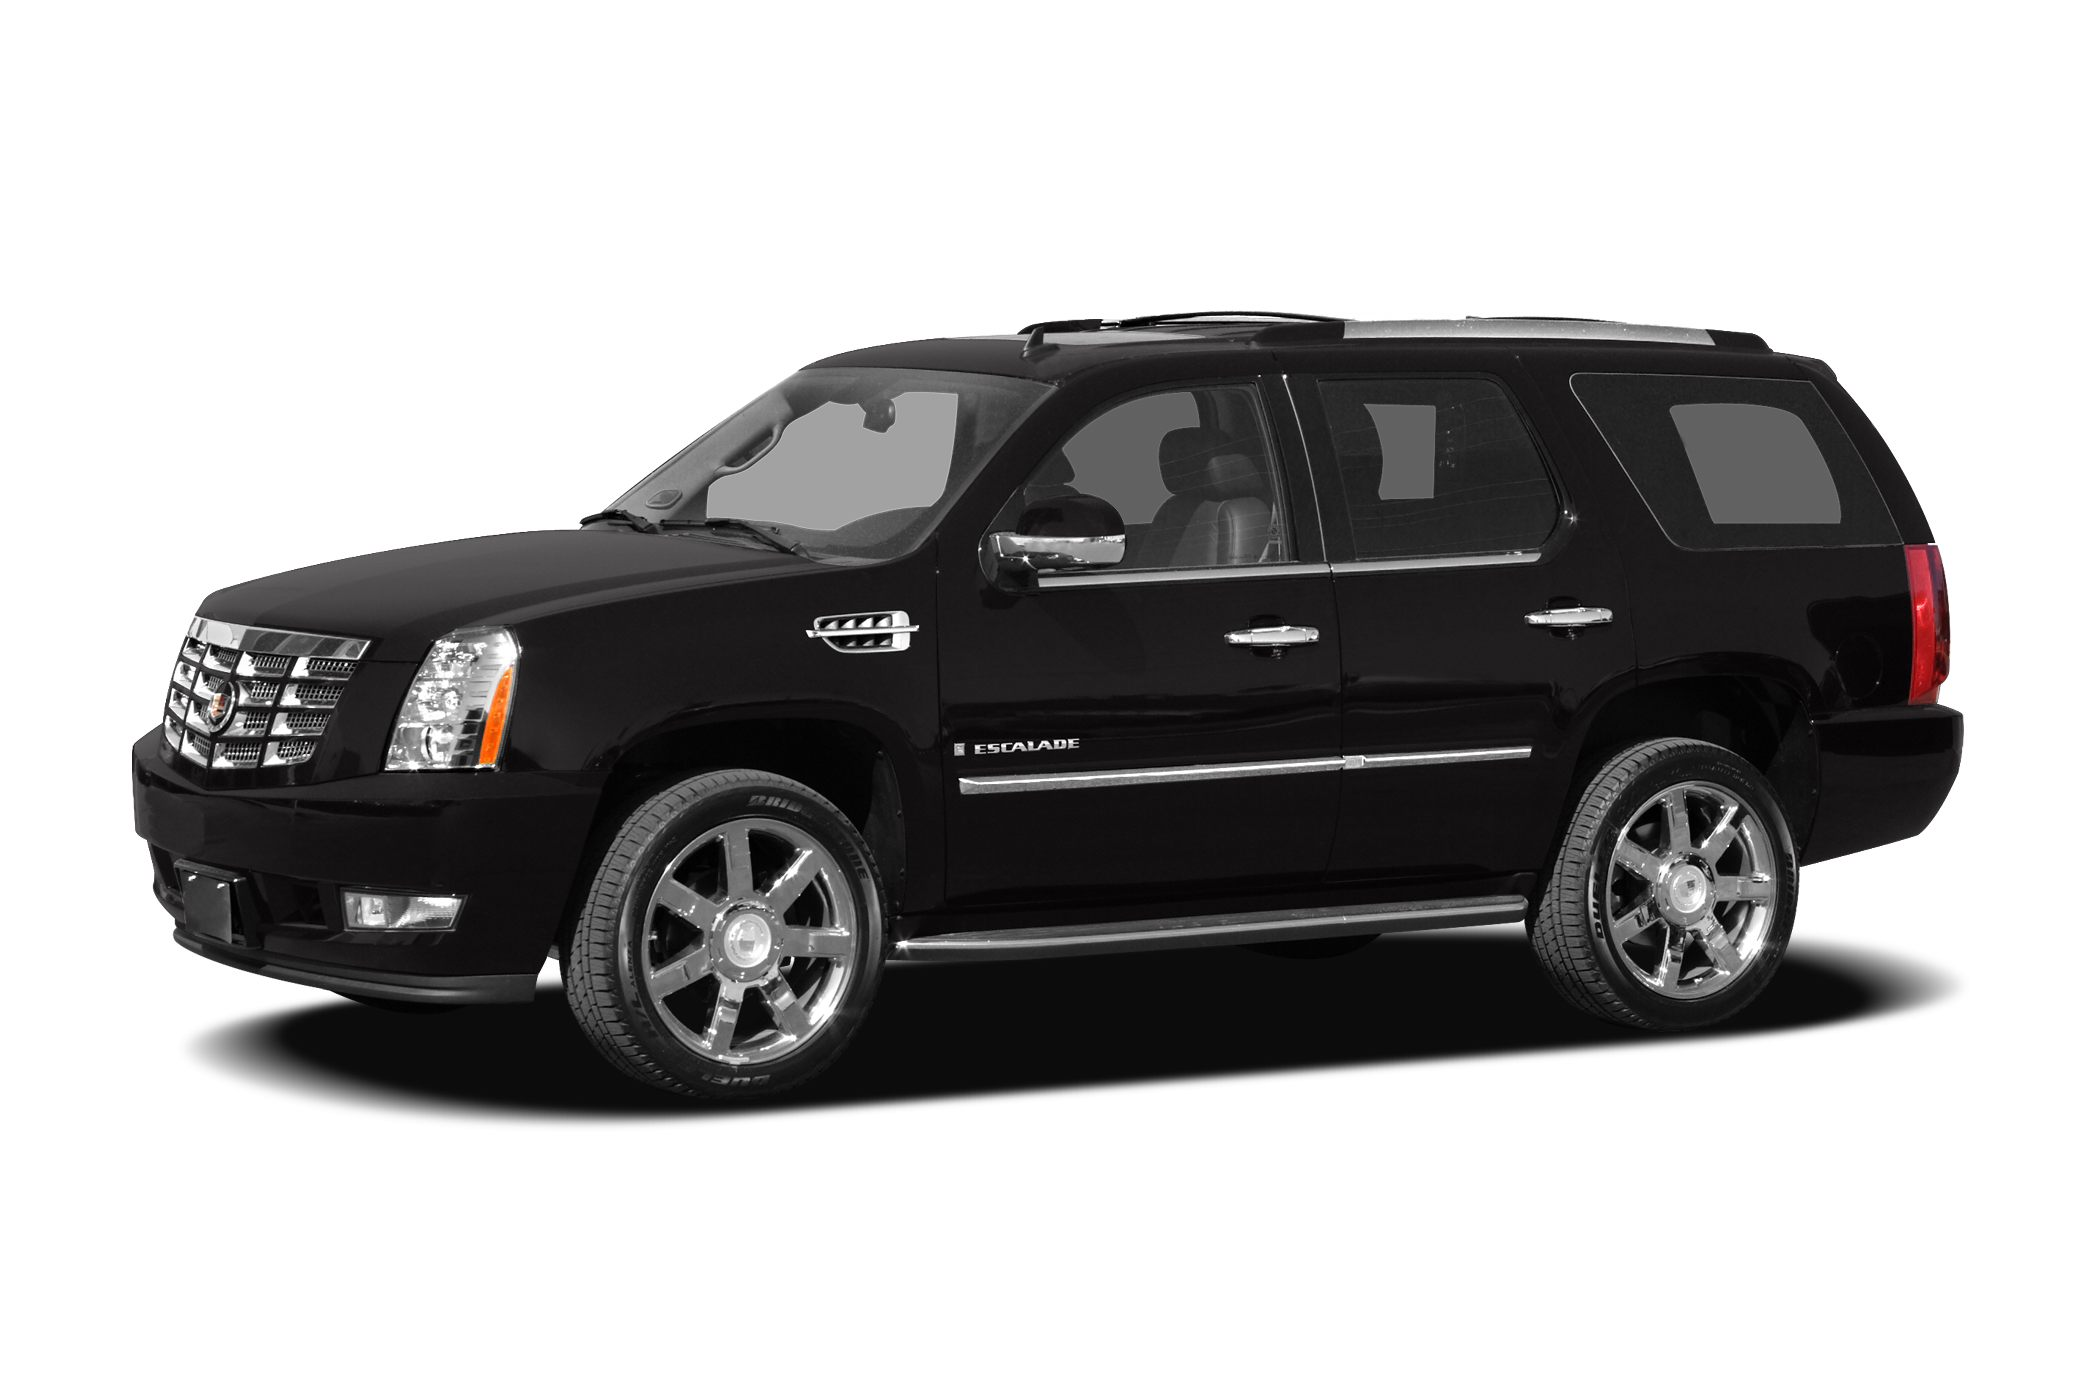 2008 Cadillac Escalade SUV for sale in Kenner for $26,988 with 94,660 miles